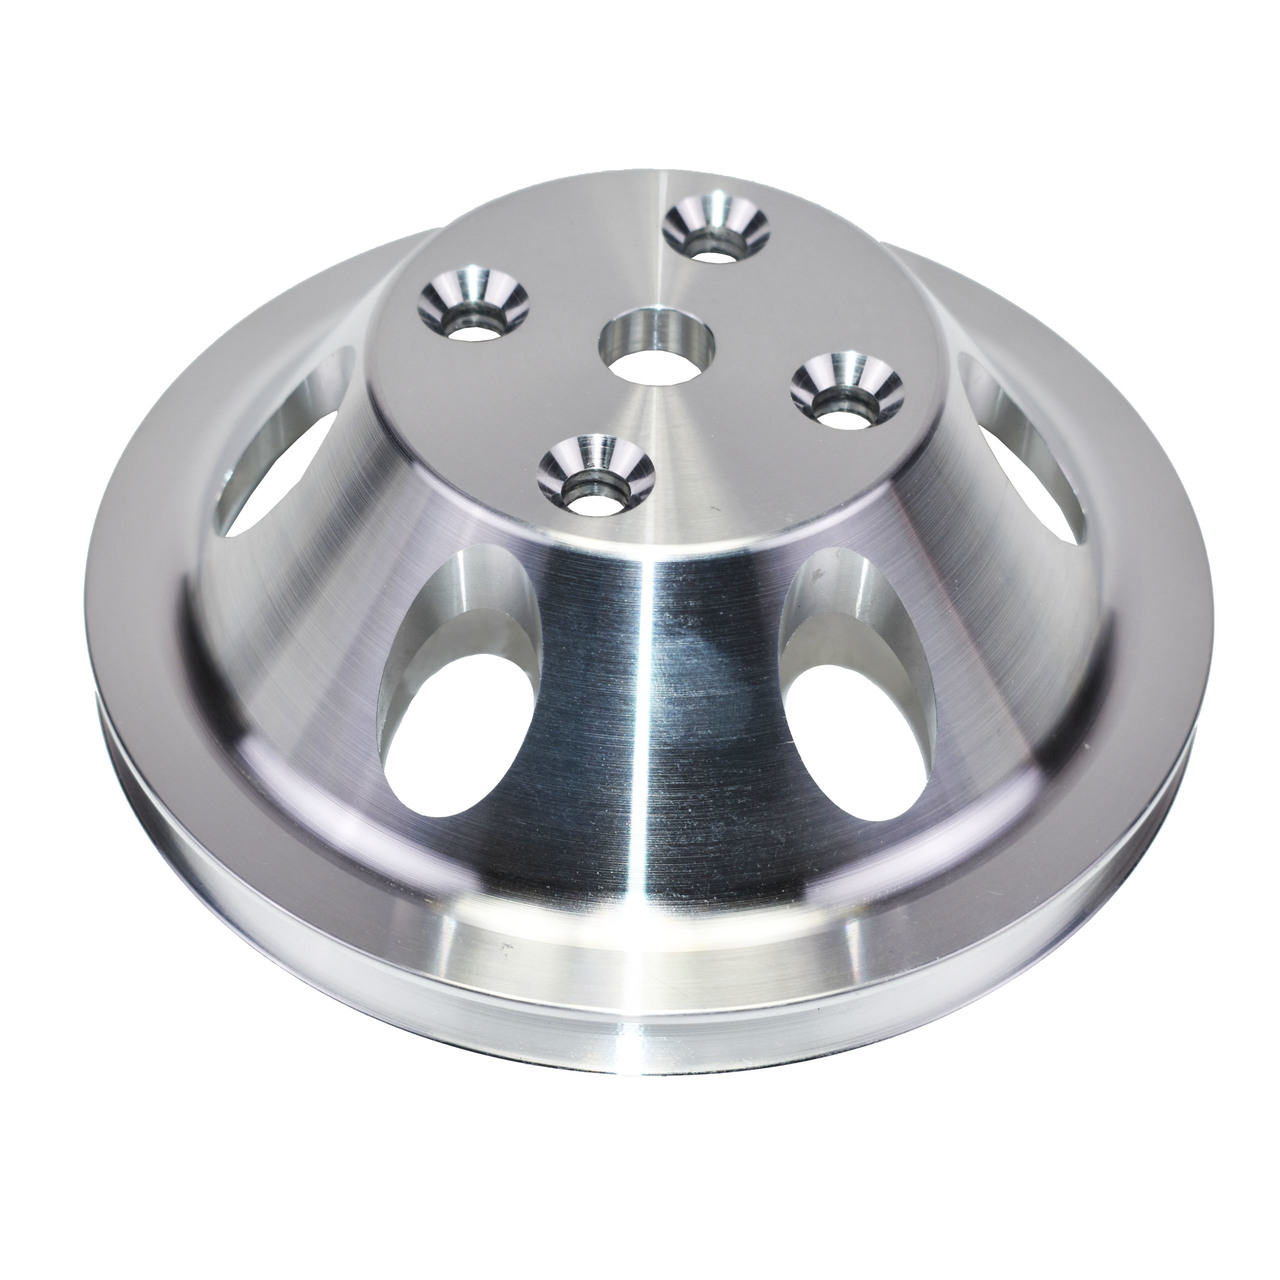 A-Team Performance CHEVY SMALL BLOCK SINGLE-GROOVE ALUMINUM LONG WATER PUMP PULLEY